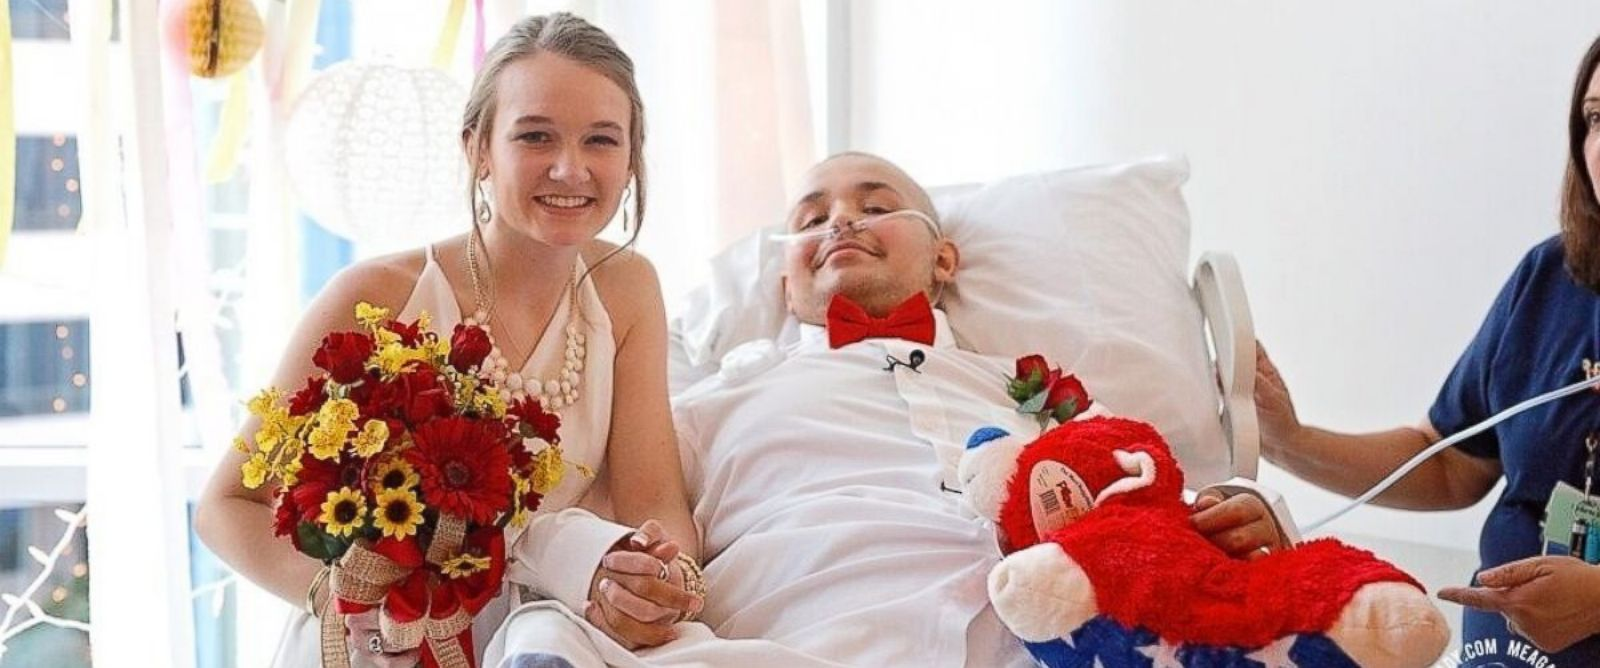 VIDEO: Teen girl marries her dying boyfriend in the hospital